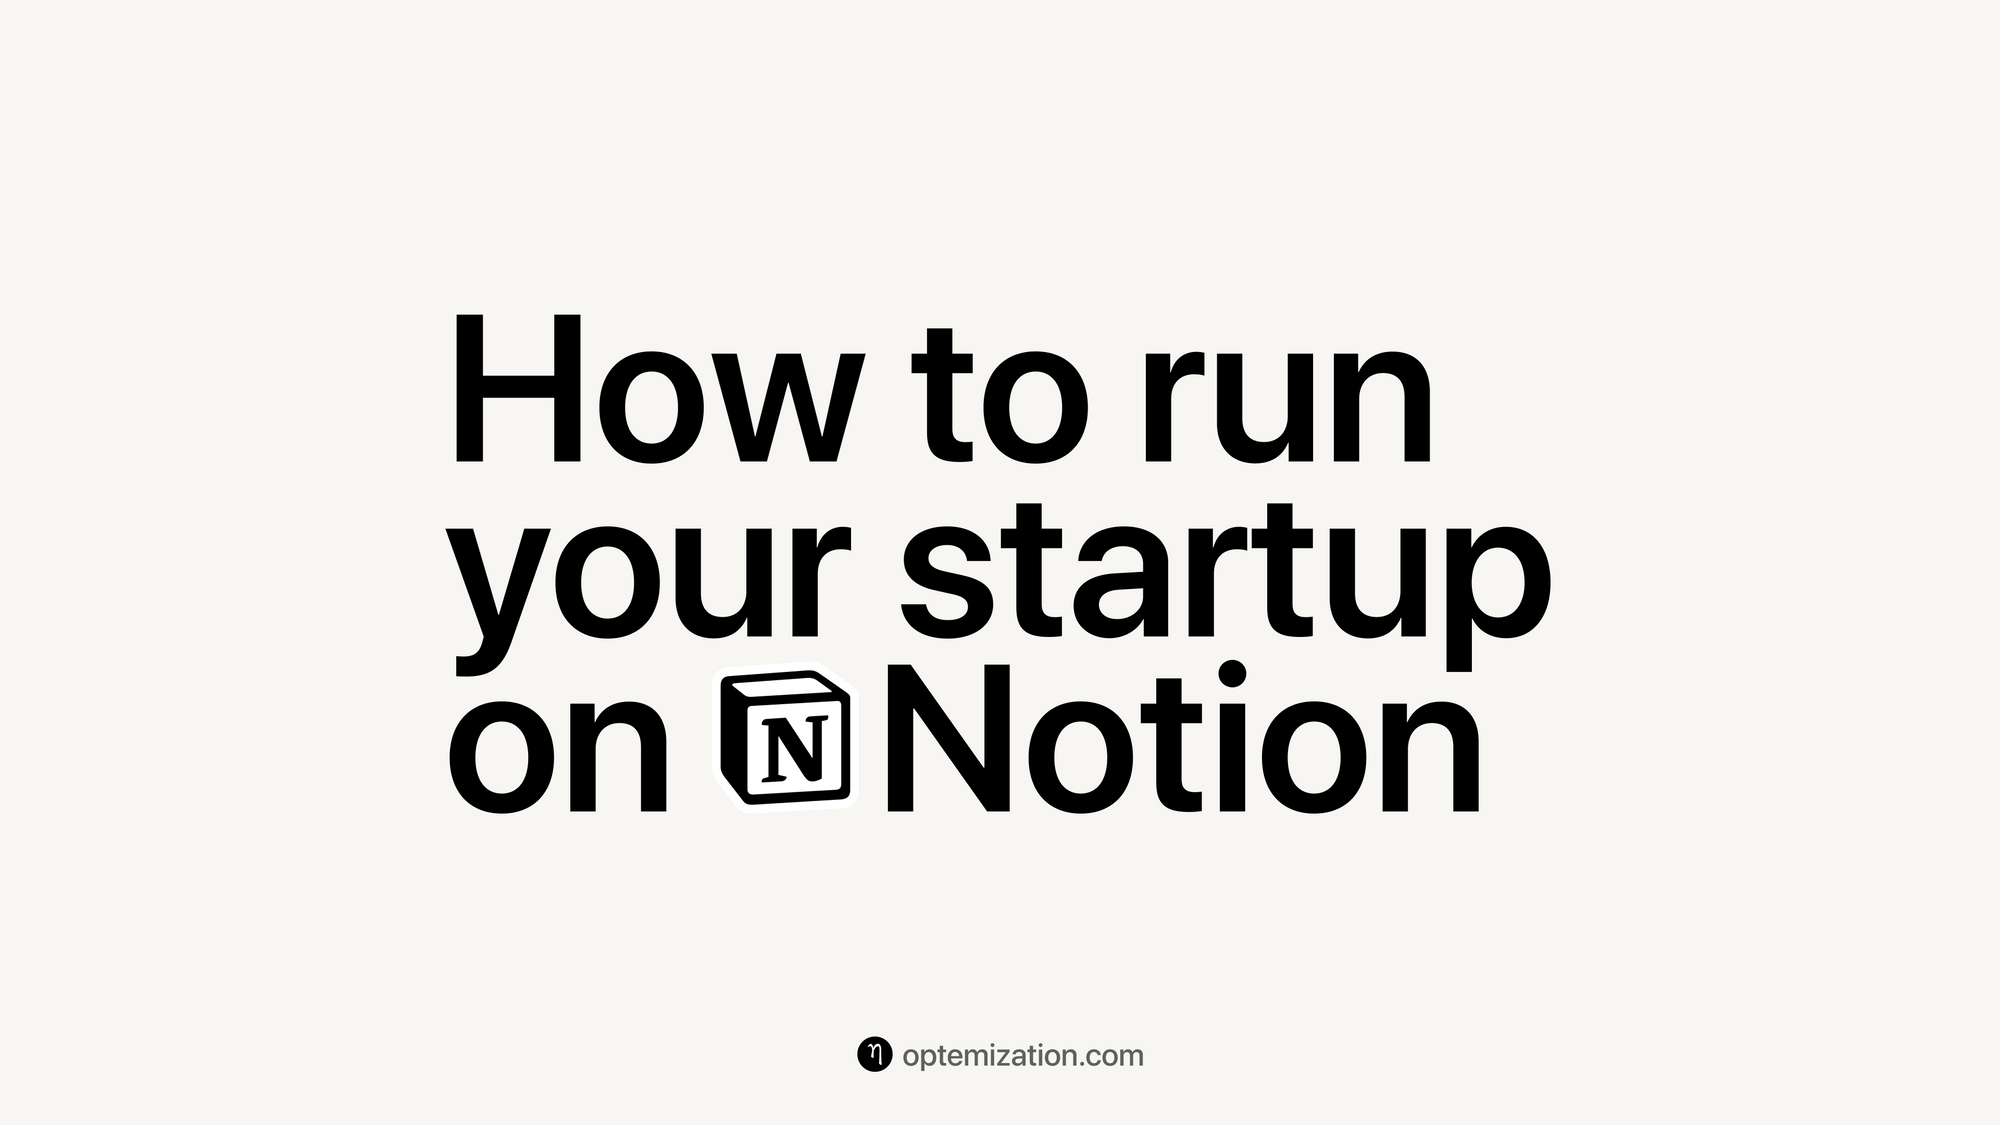 How to Run Your Startup on Notion